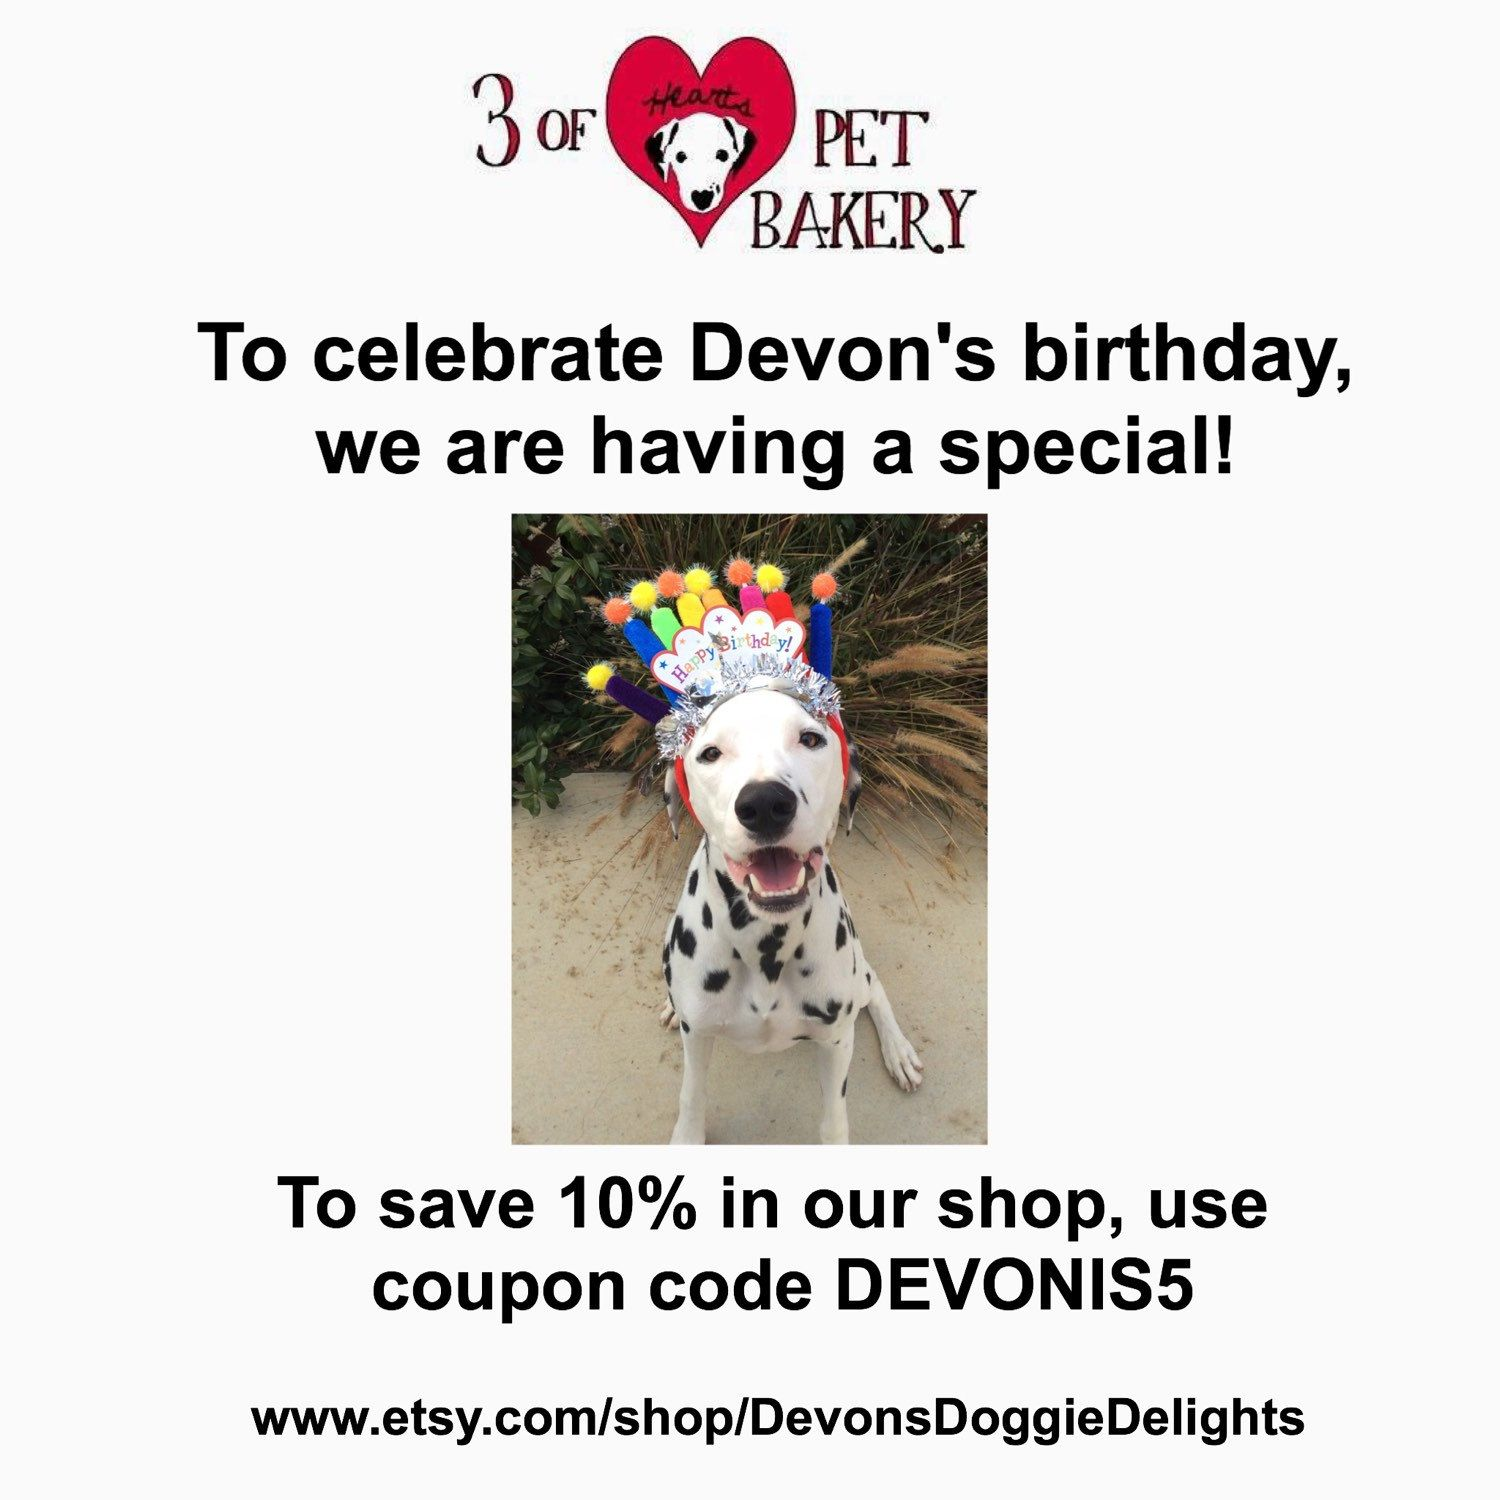 To celebrate Devon's birthday, we have a 10% off coupon for you, good through the 29th of December!!